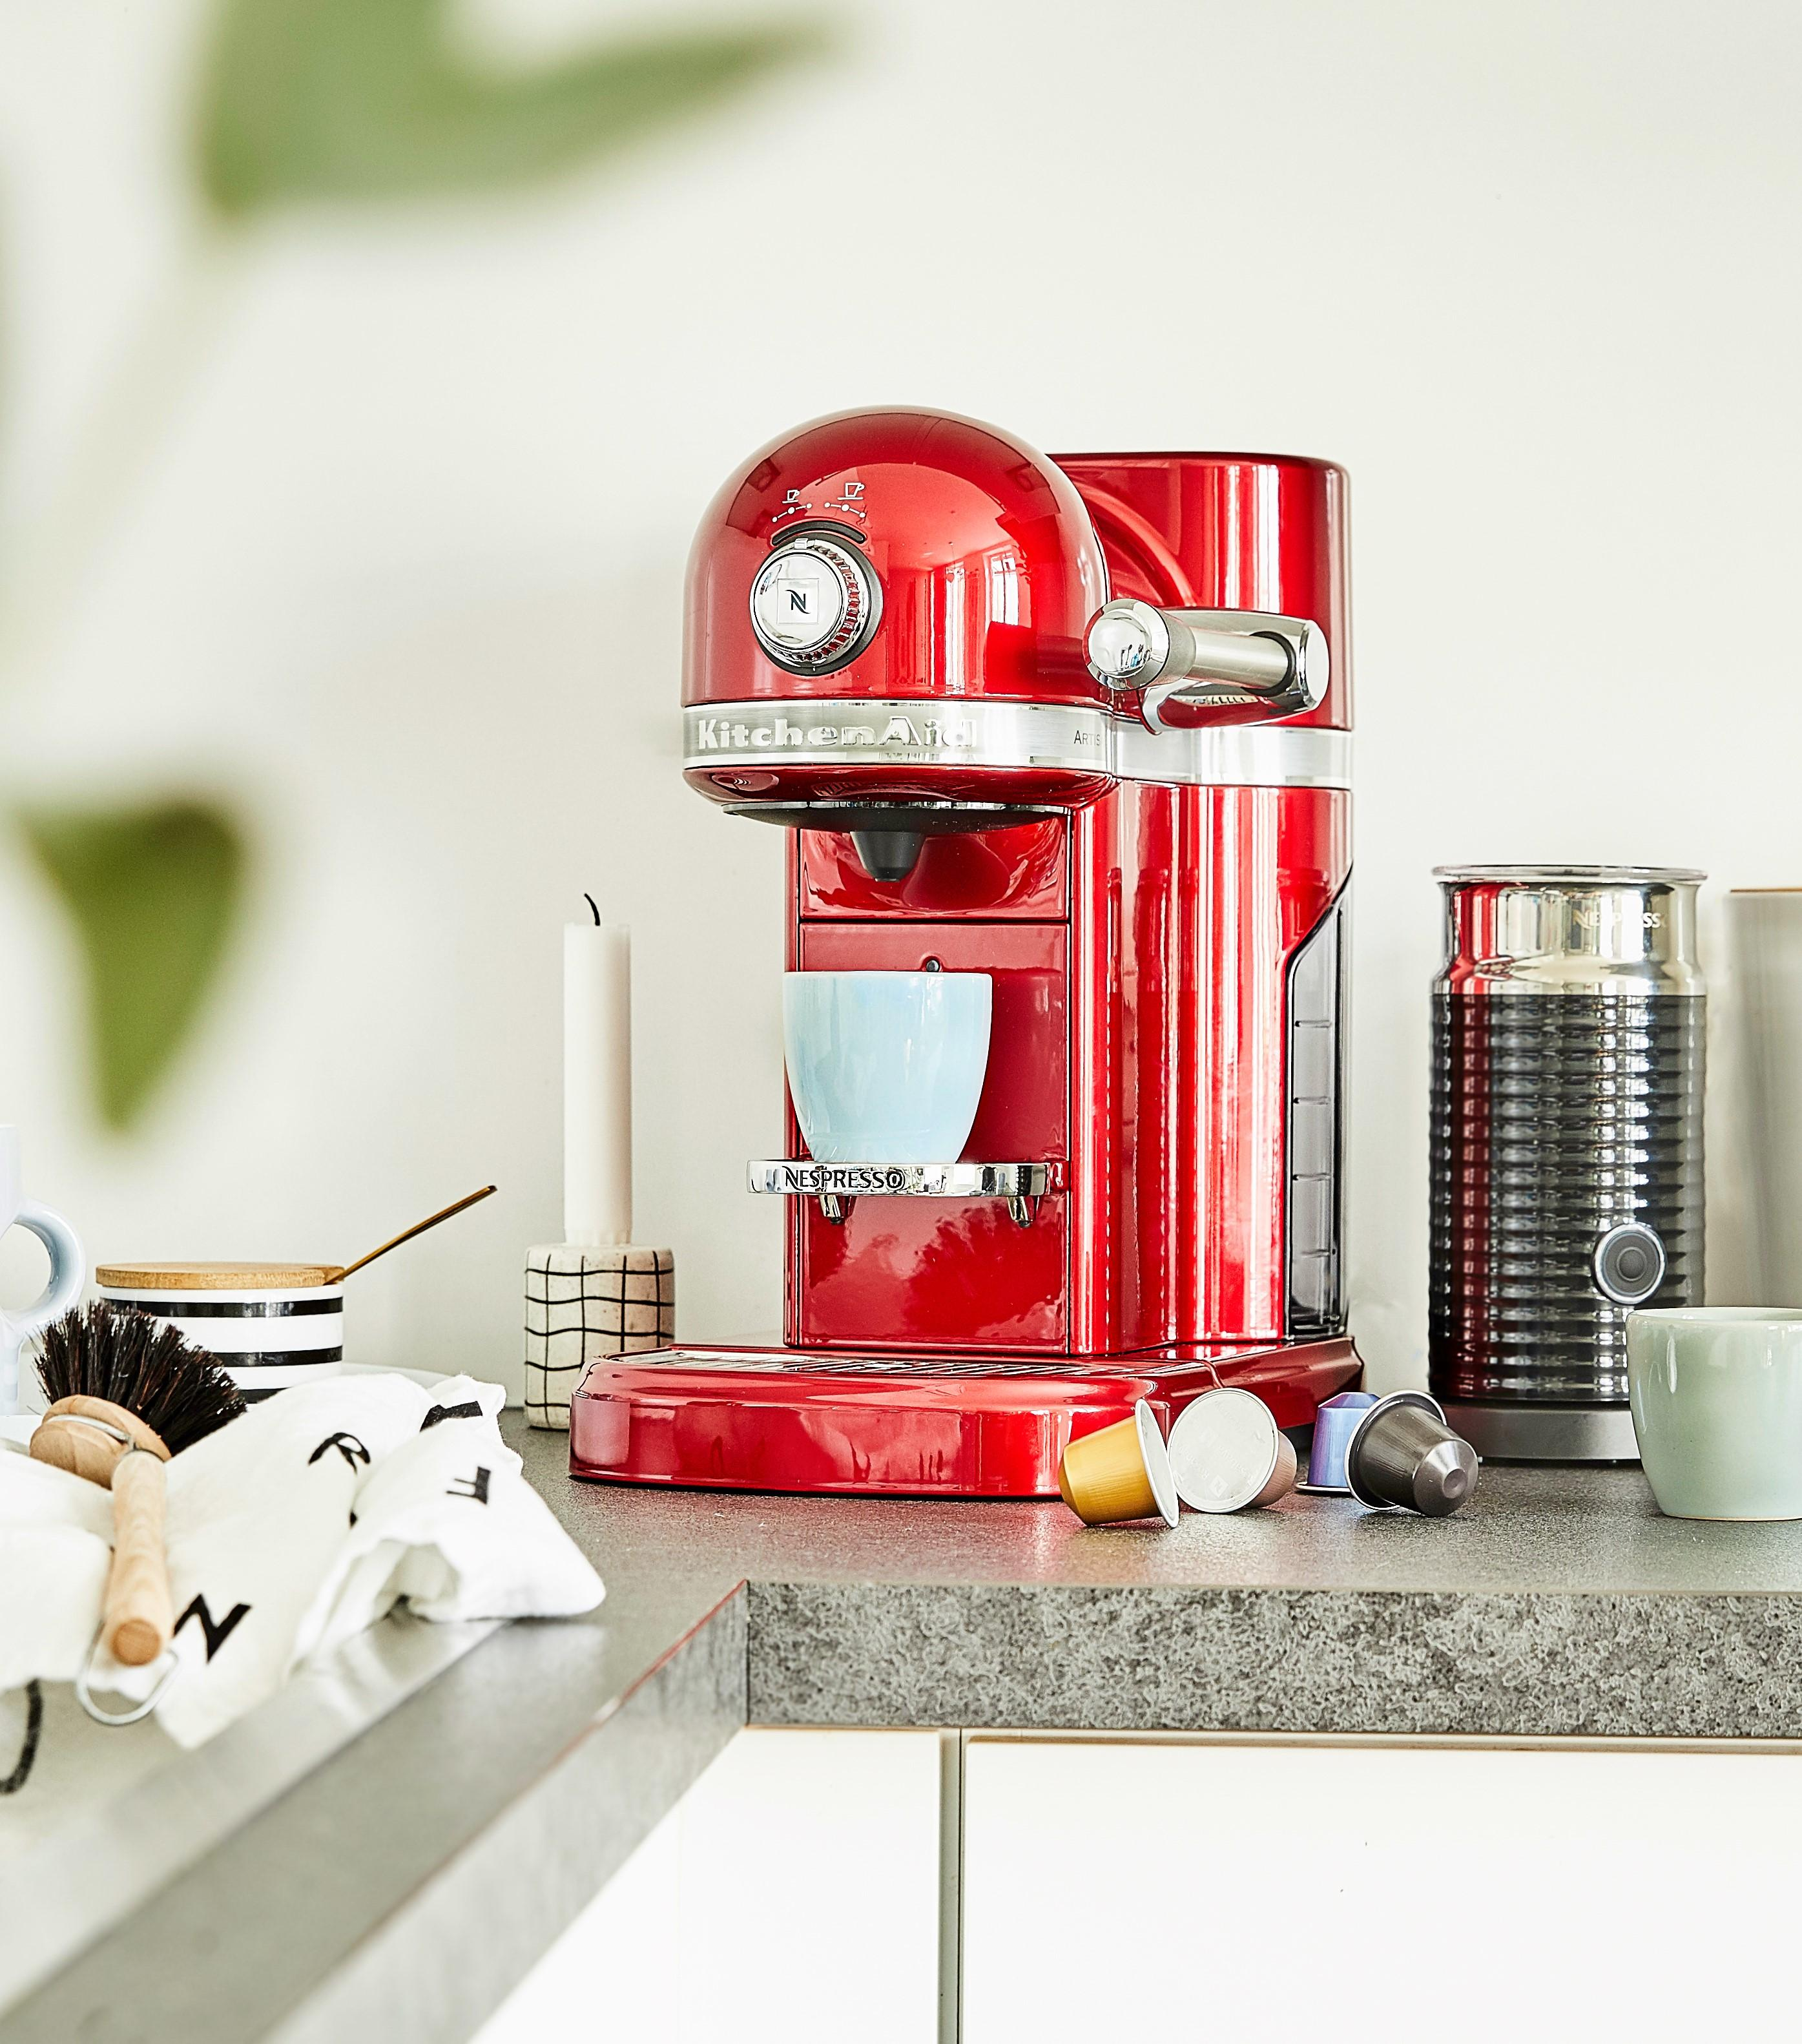 Rote KitchenAid Kaffeemaschine